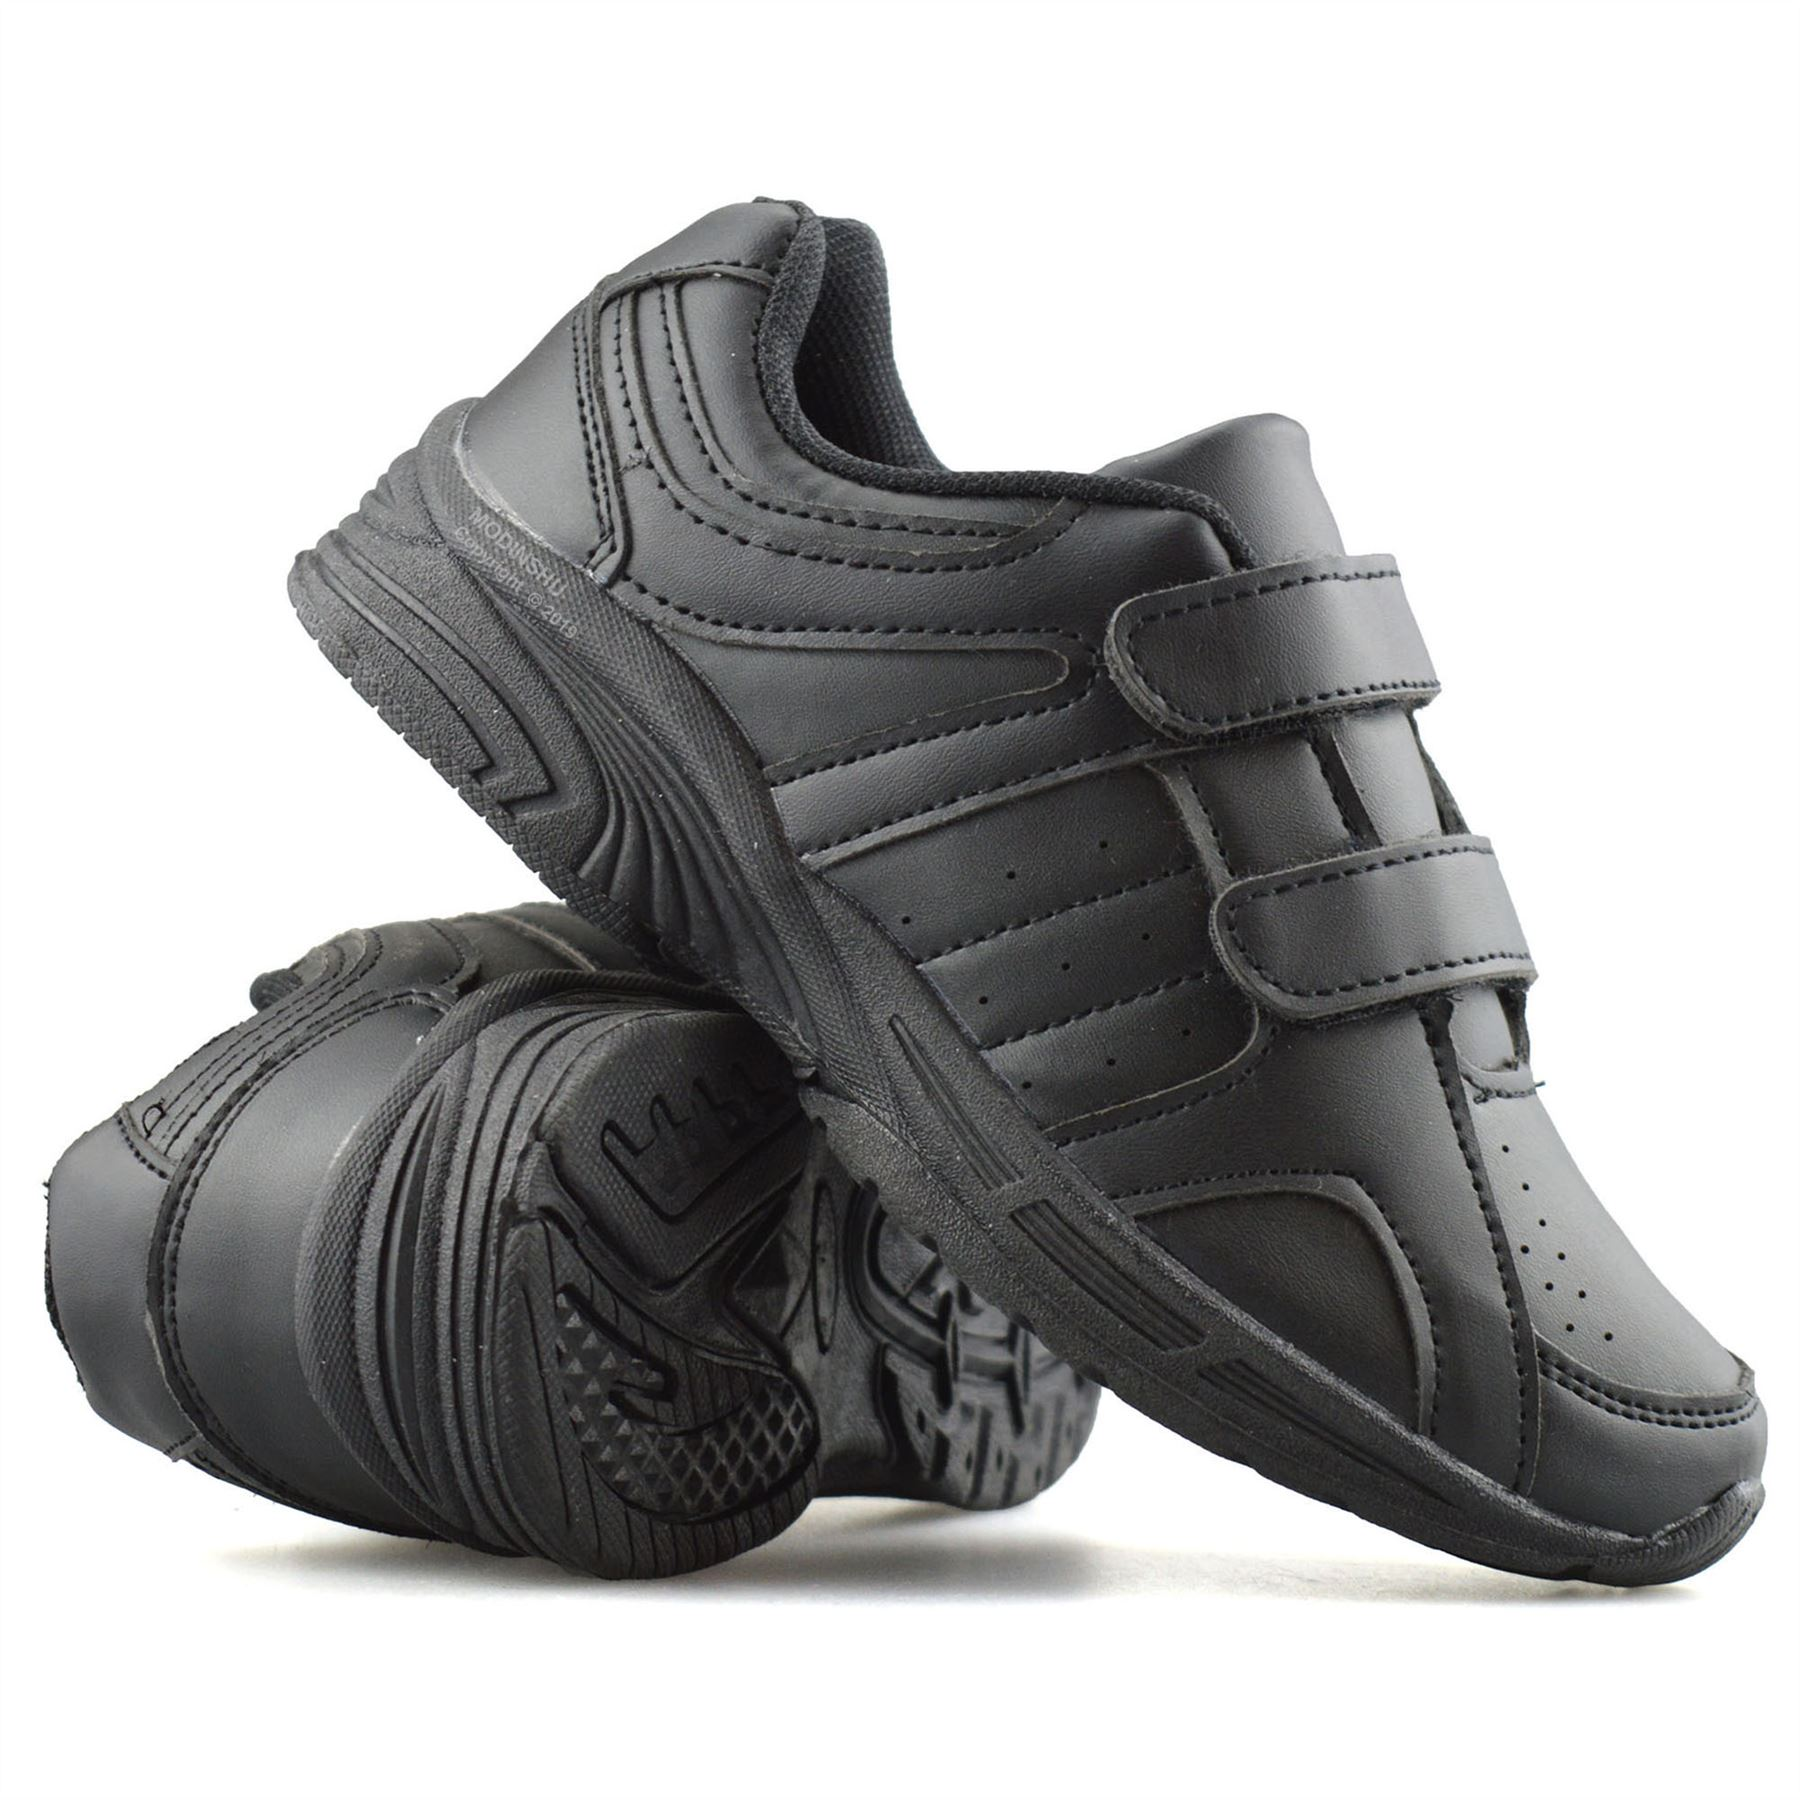 Boys-Kids-New-Formal-Smart-Casual-Touch-Strap-Back-To-School-Trainers-Shoes-Size thumbnail 12